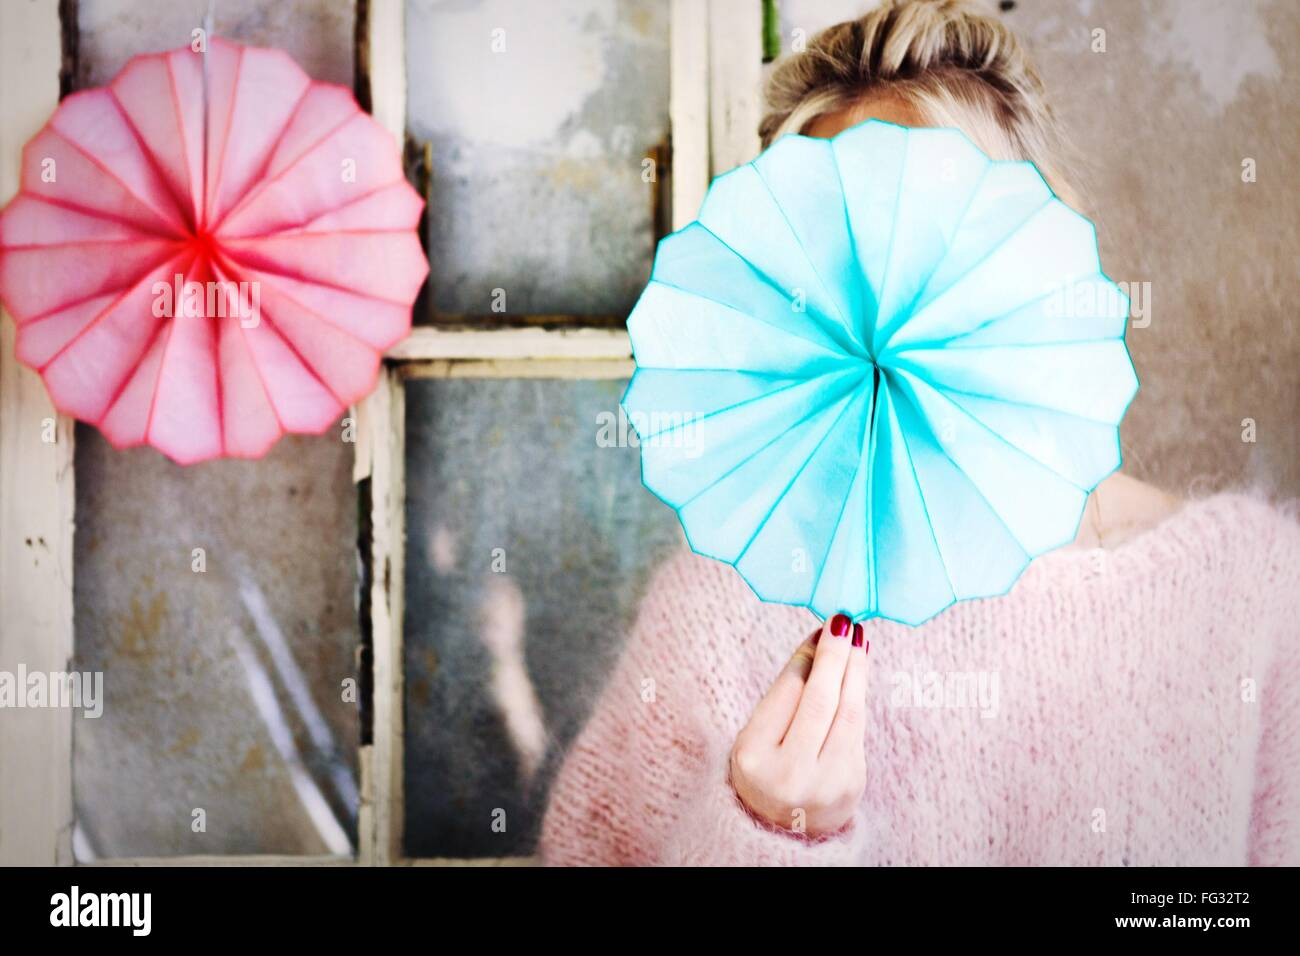 Woman Holding Blue Handmade Paper Fan In Front Of Face - Stock Image